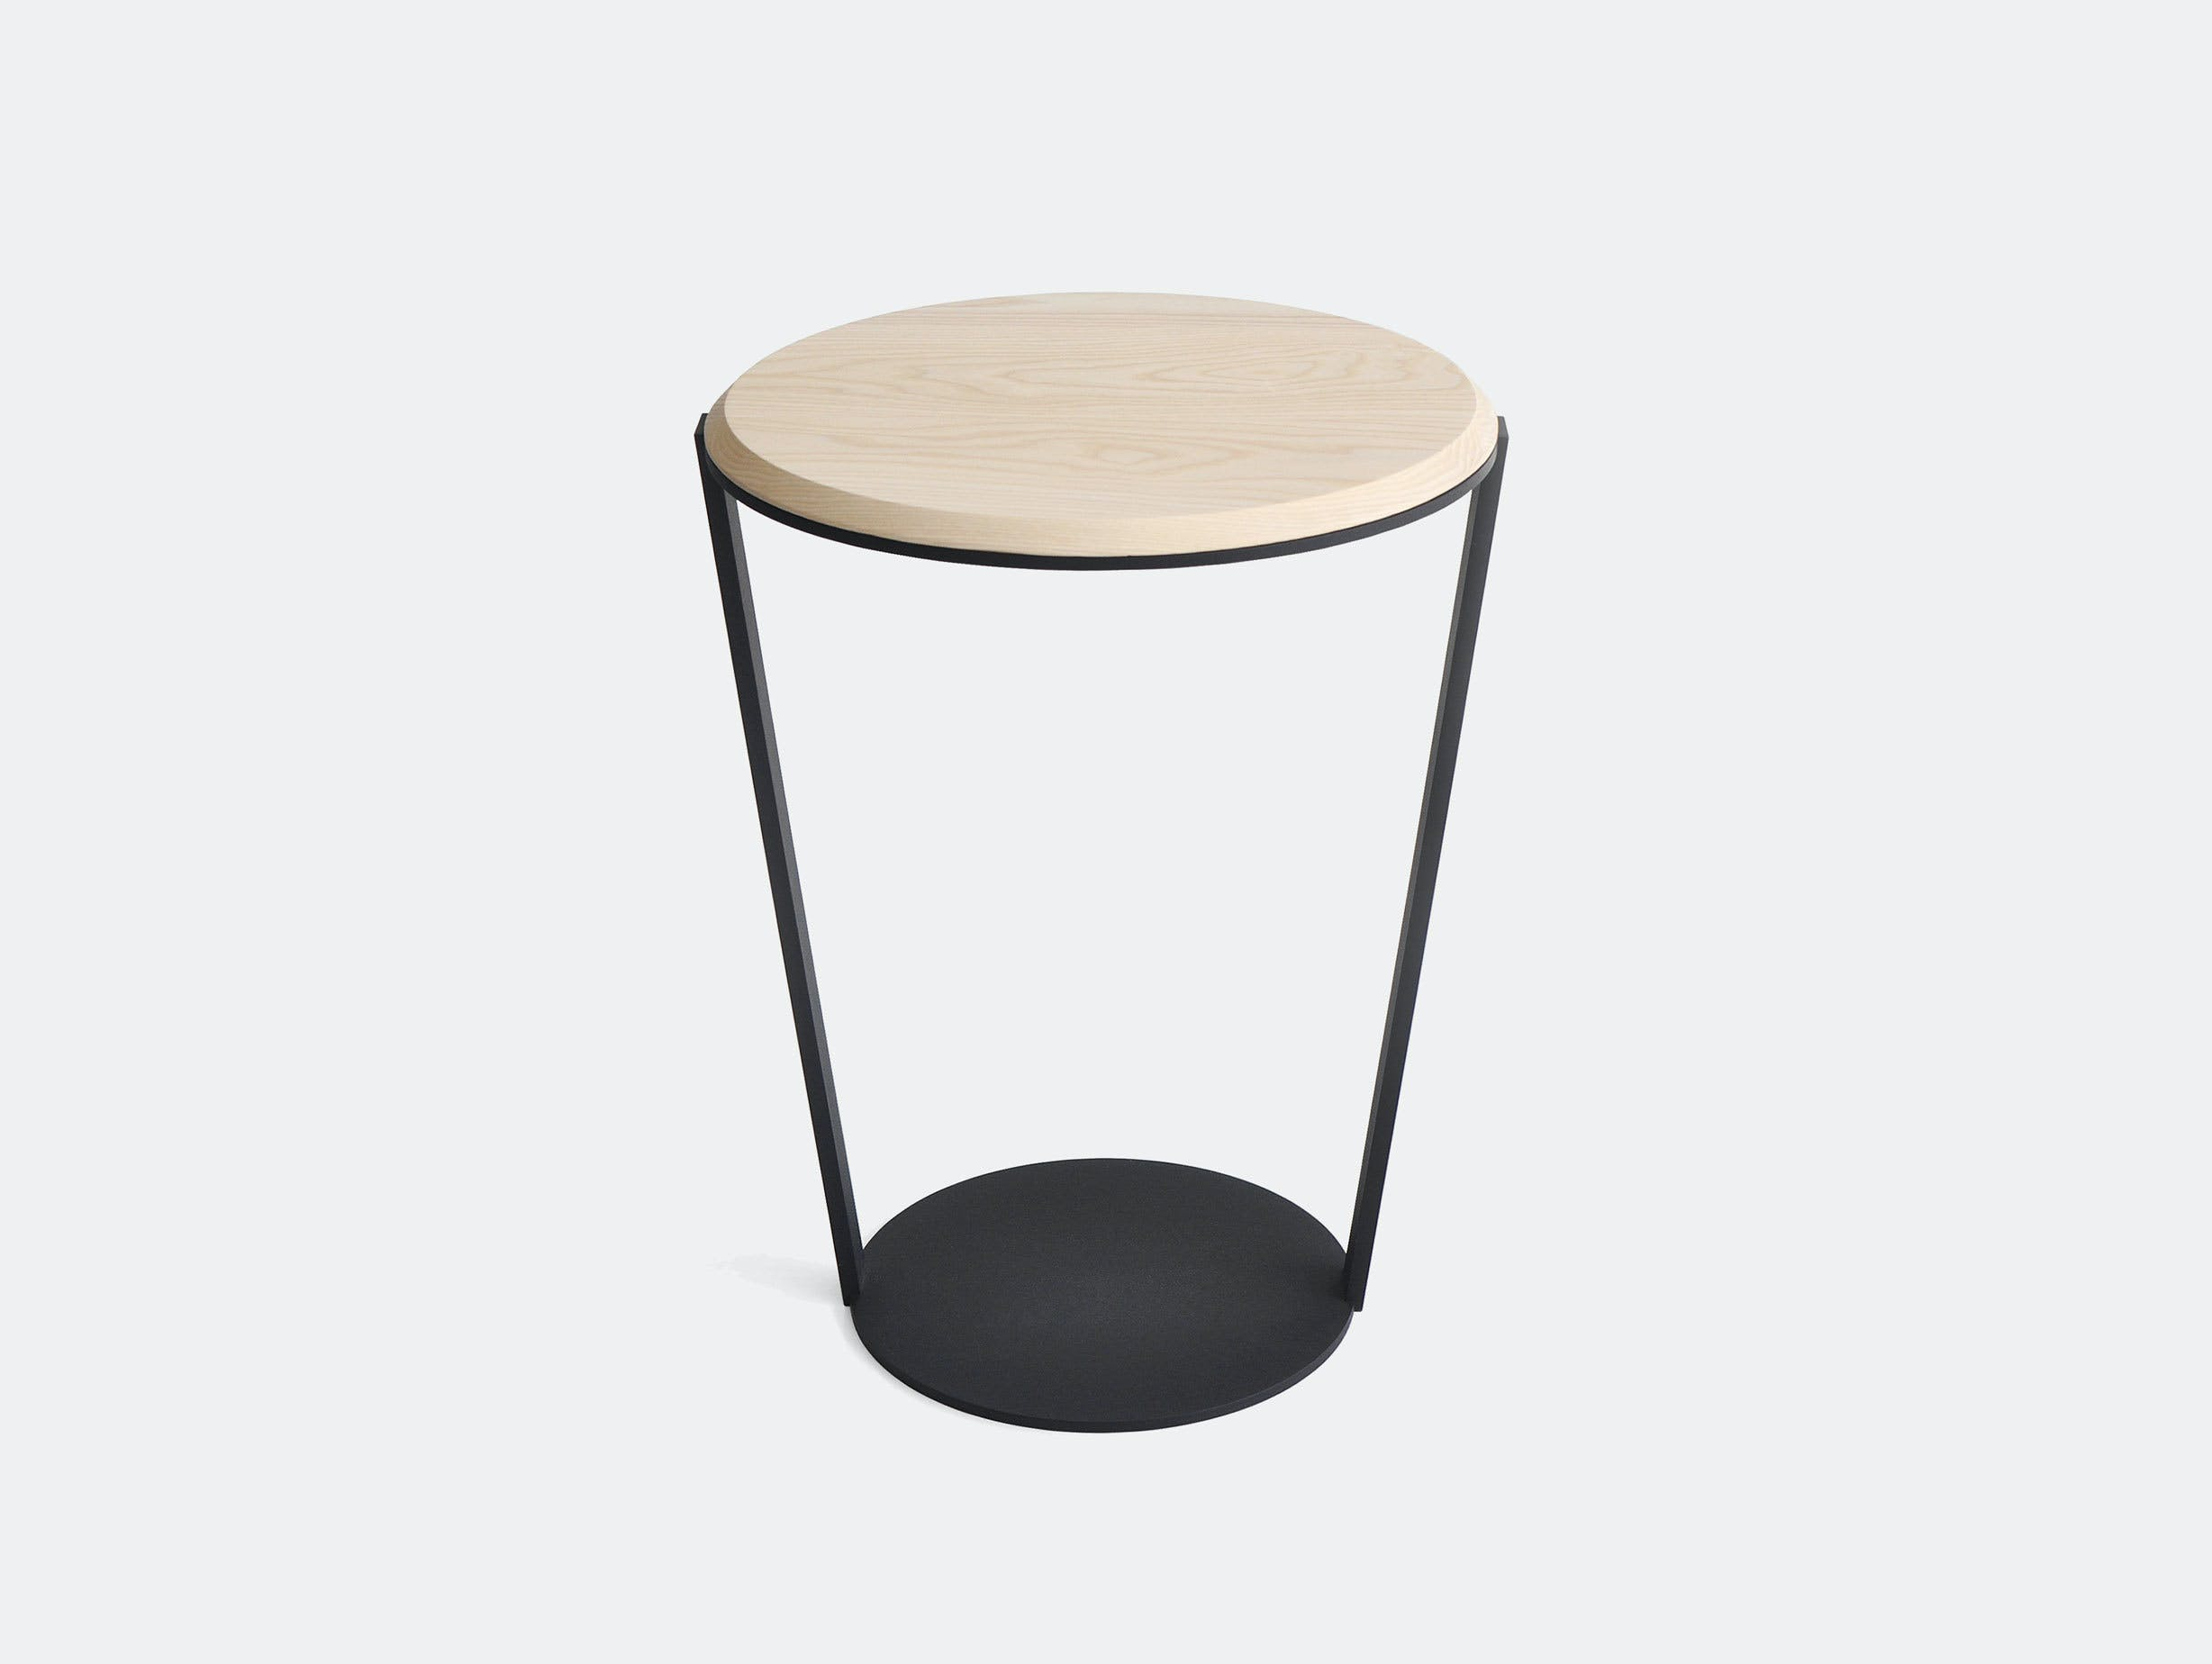 Bensen Around side table white ash